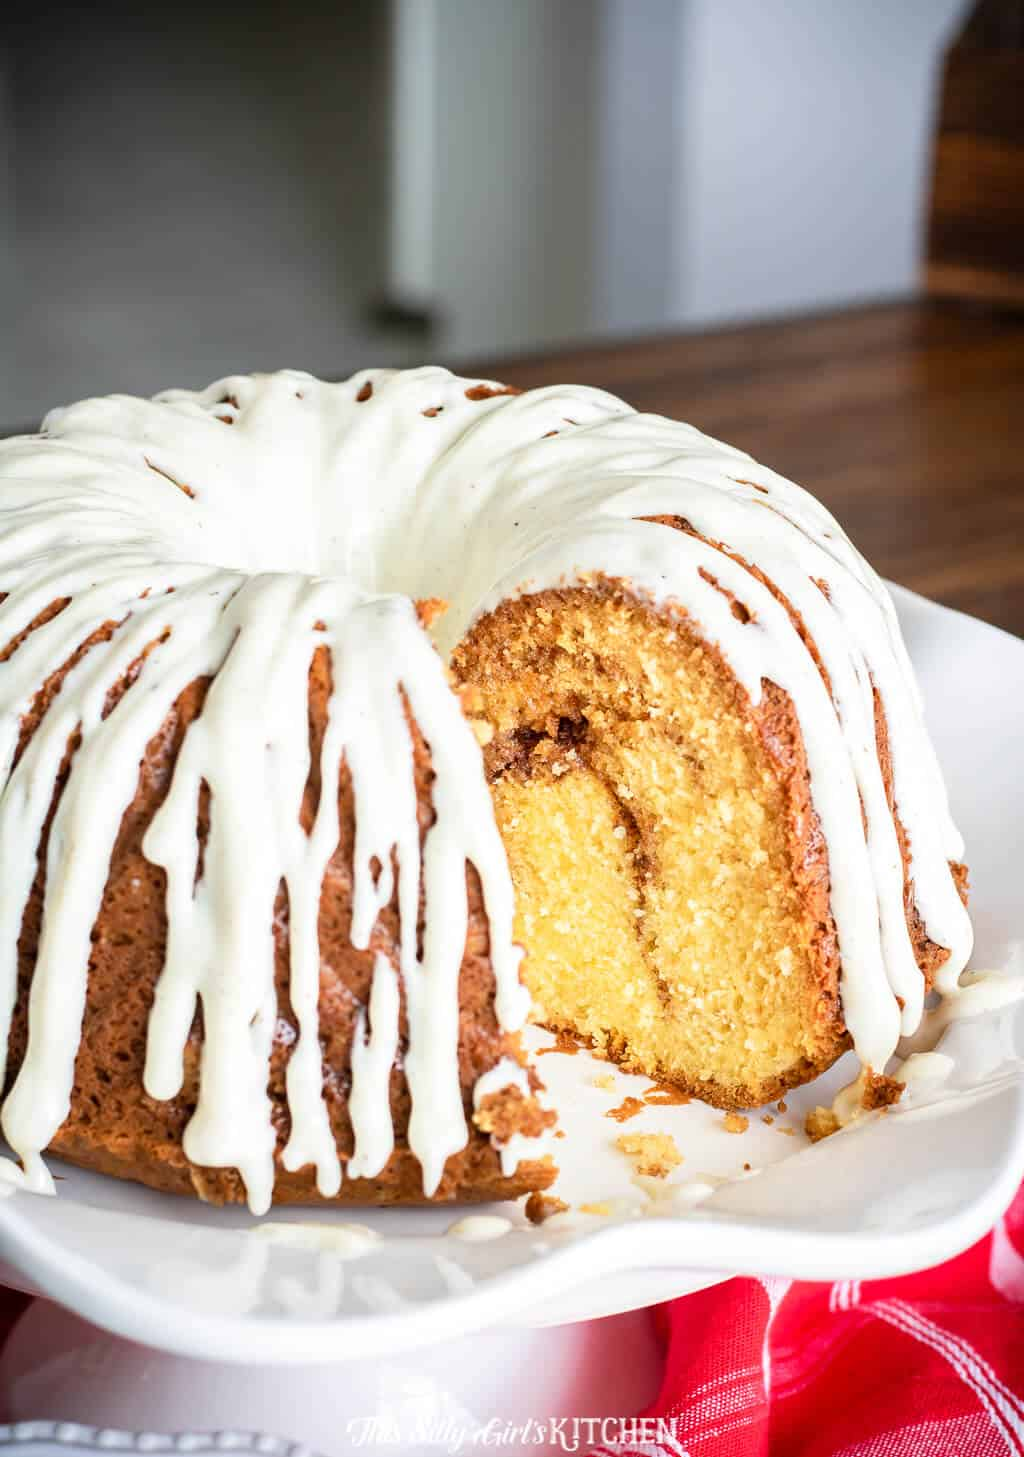 Sour Cream Coffee Cake on cake stand glazed with piece missing